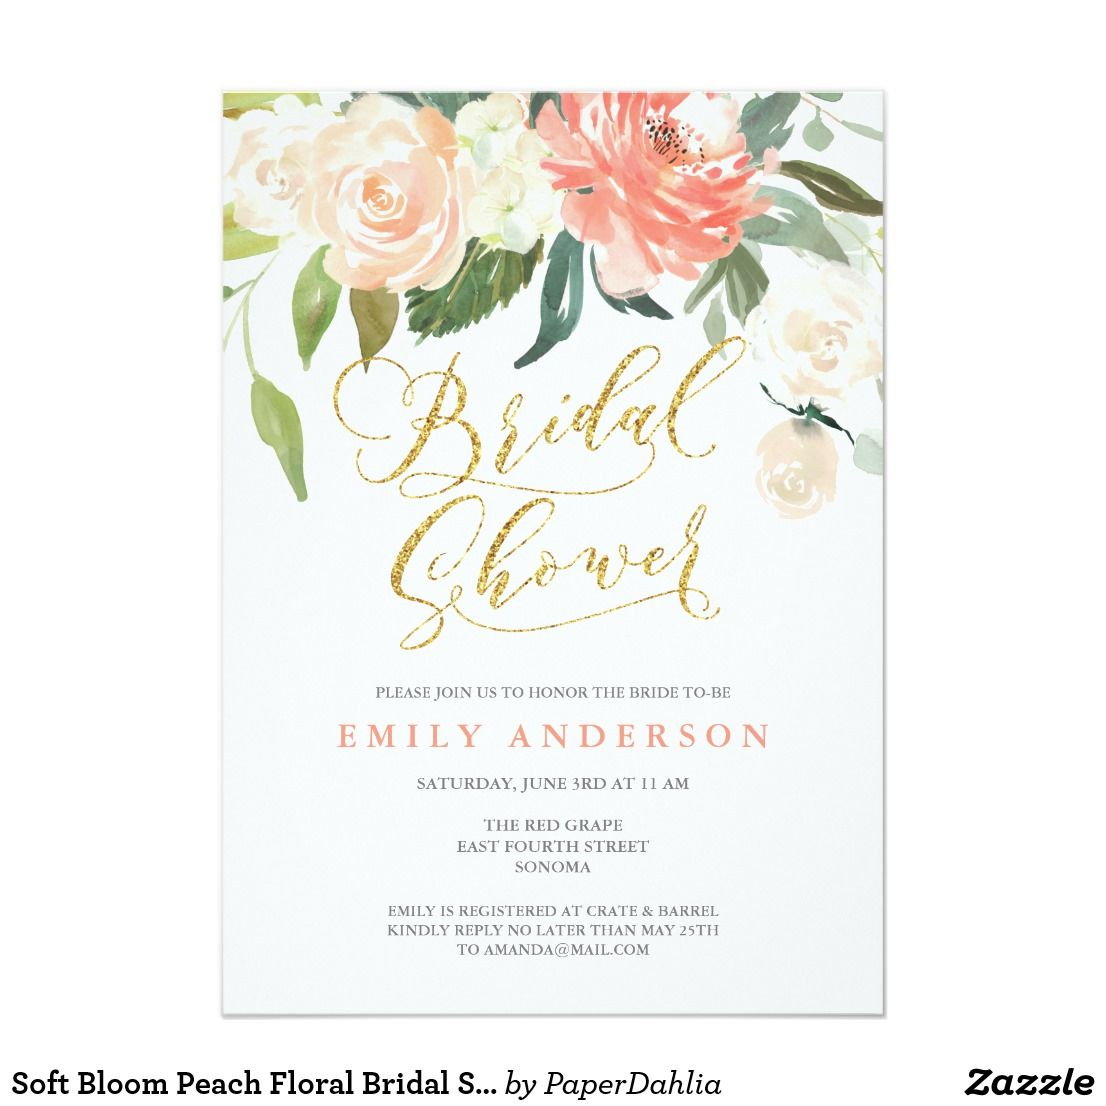 Soft Bloom Peach Floral Bridal Shower Invitation Shower